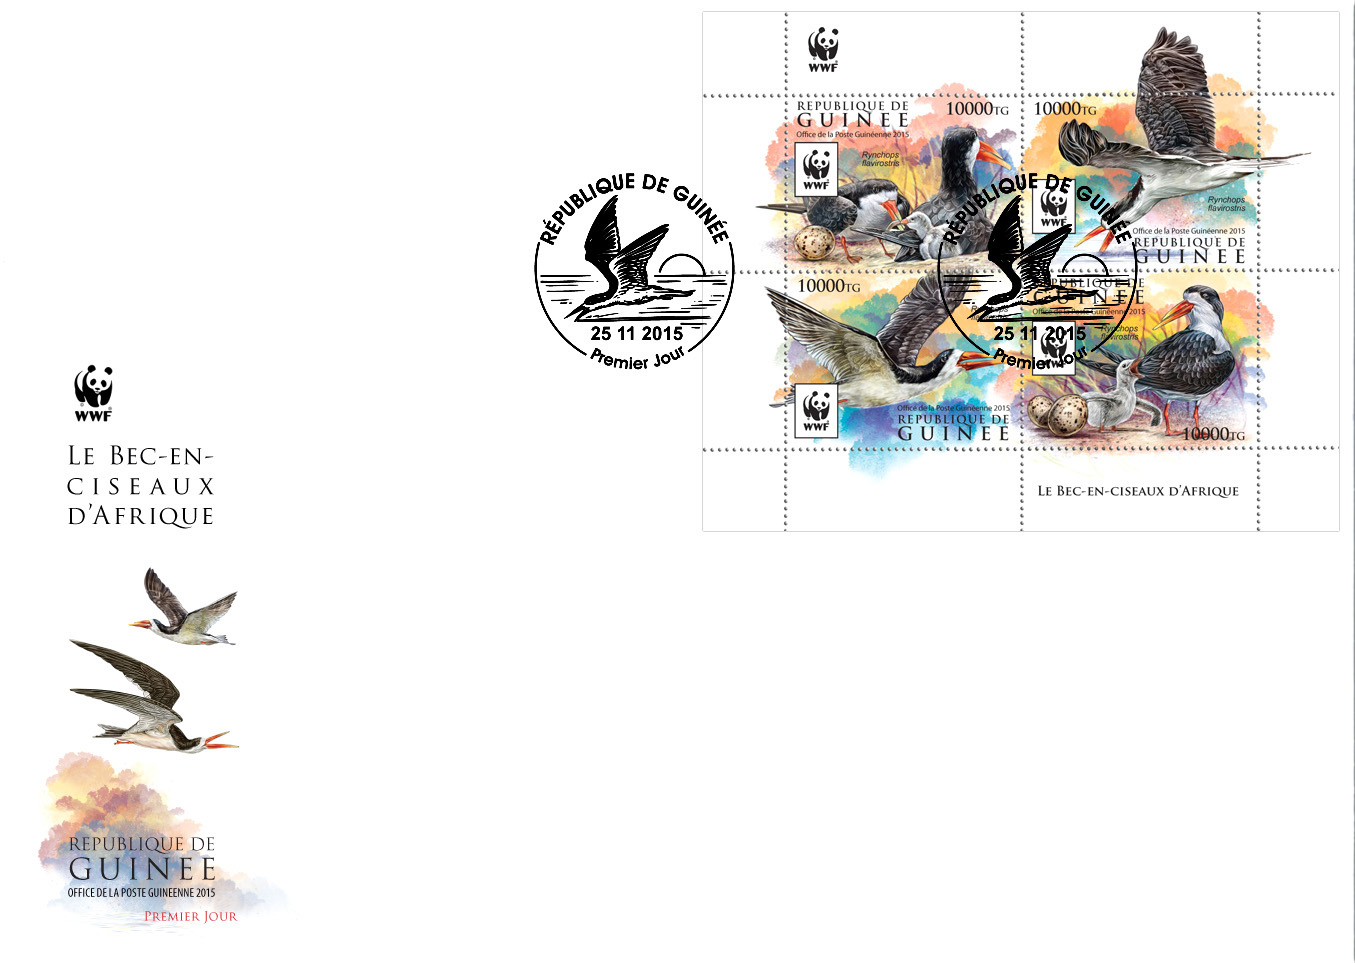 WWF – Skimmer (FDC) - Issue of Guinée postage stamps